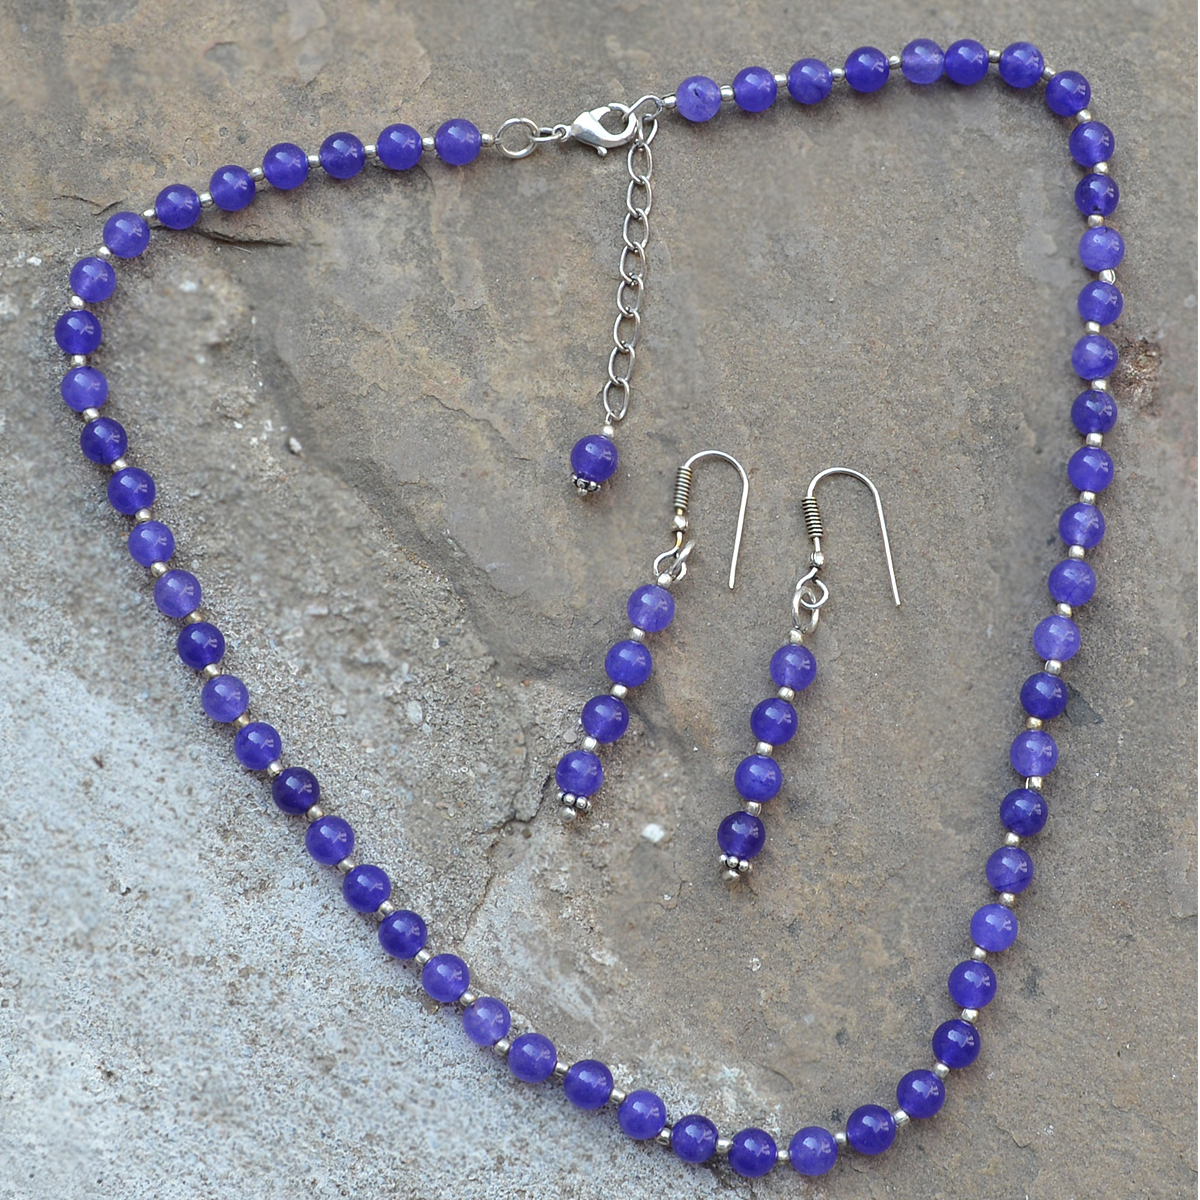 Handmade Jewelry Manufacturer Wire-Wrapped Earring, 925 Sterling Silver, 6mm Beaded Purple Quartz, Jaipur Rajasthan India Chain Necklace Set